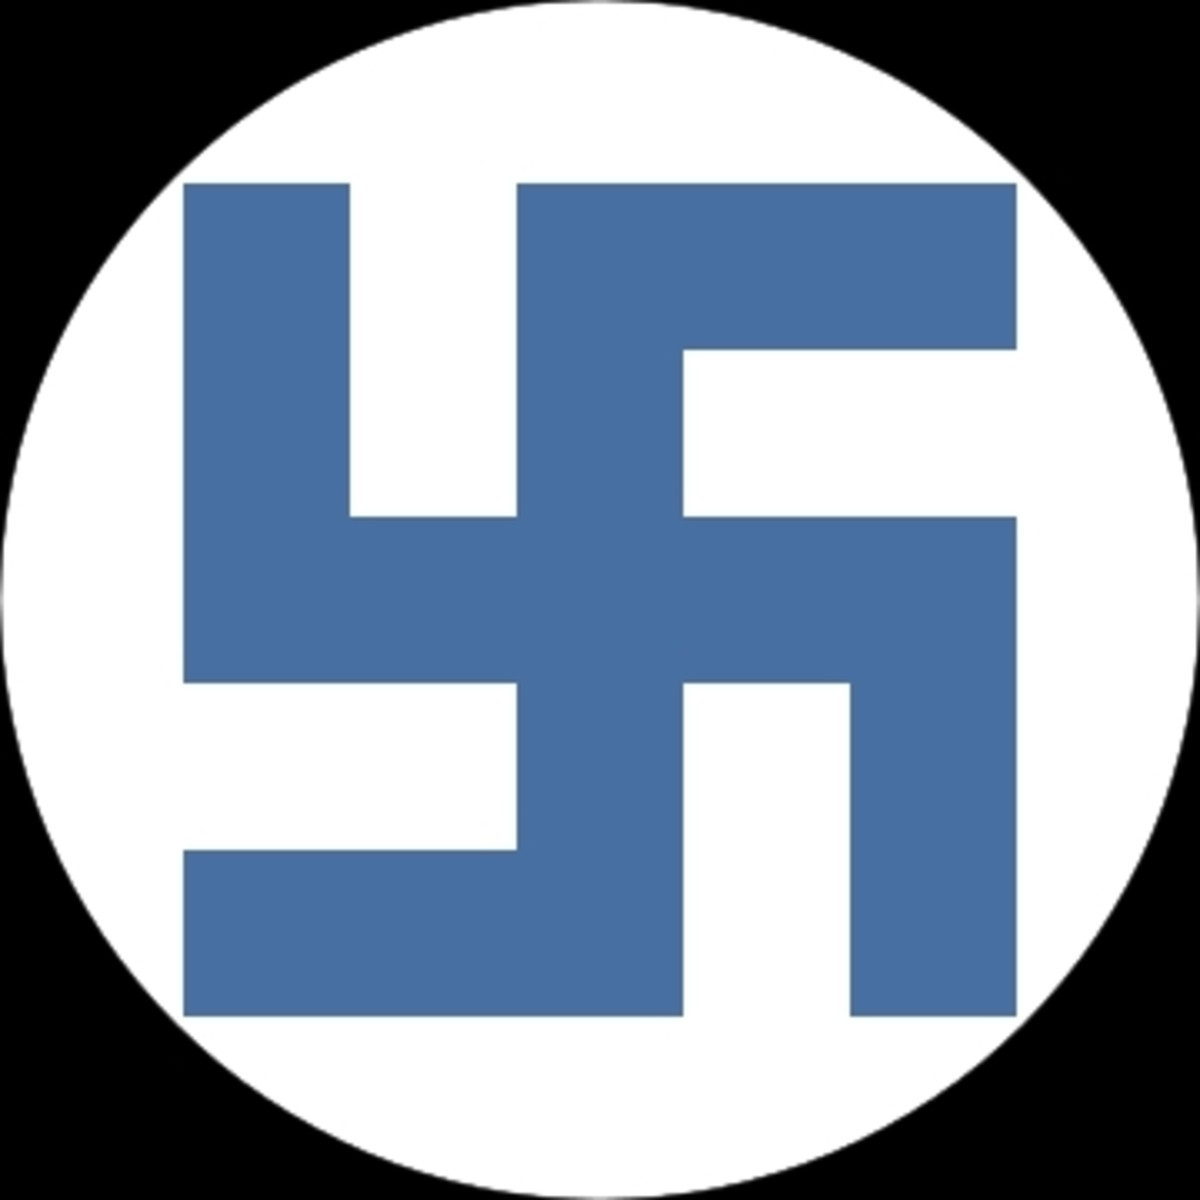 Finnish Air Force insignia 1918-1945